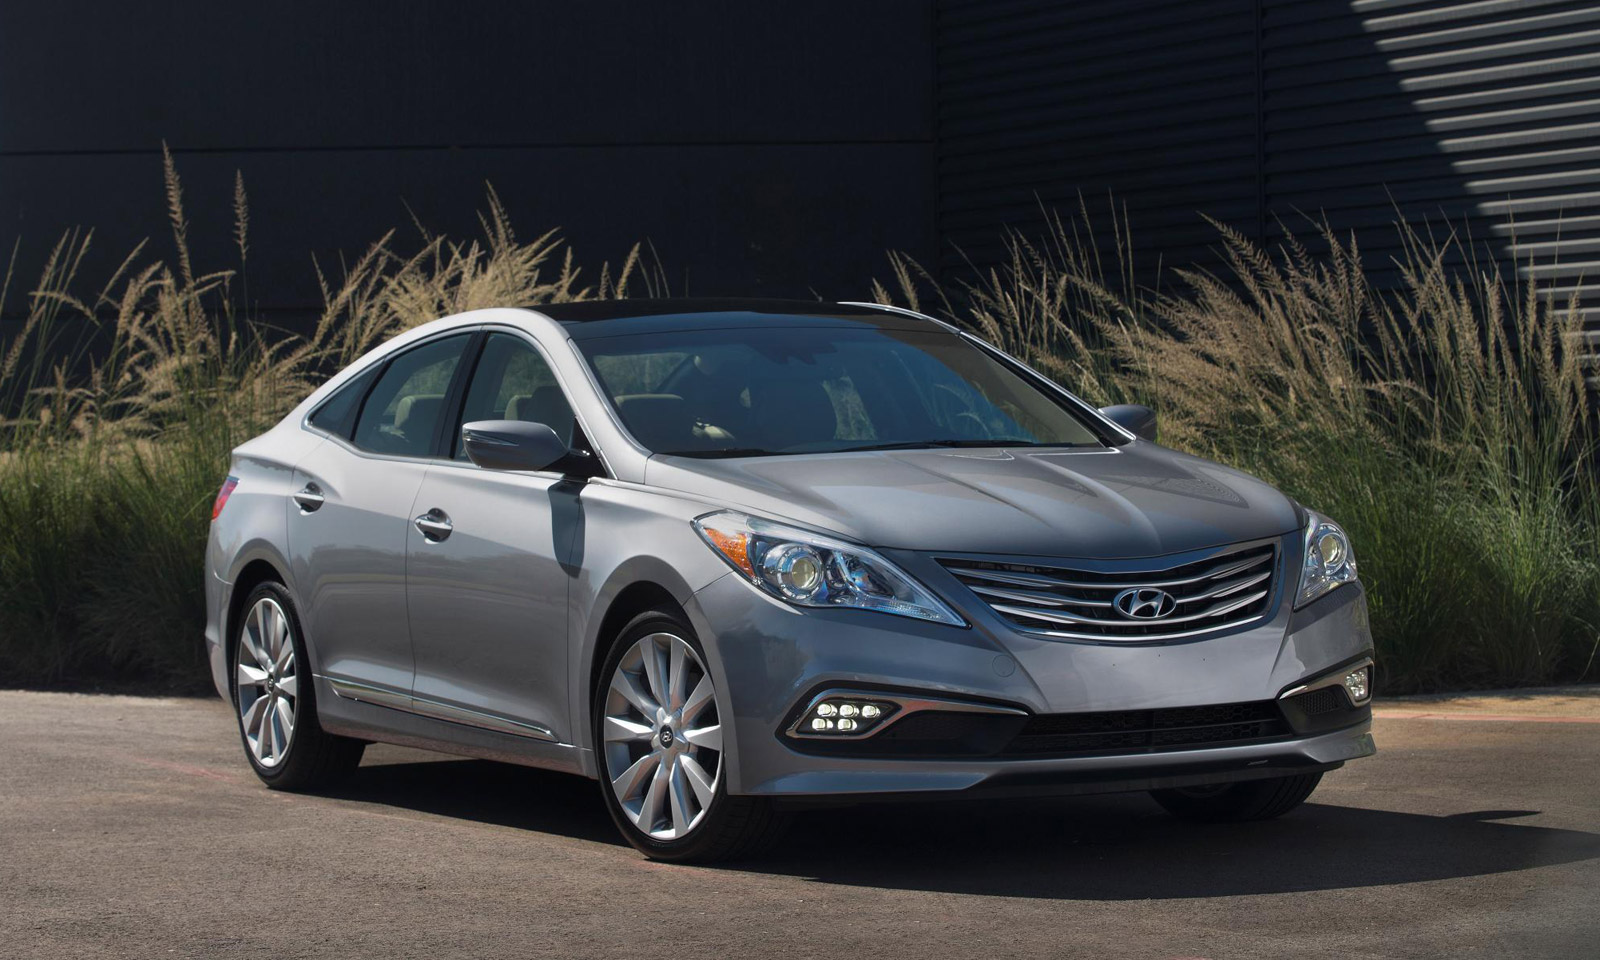 2015 Hyundai Azera Gets New Look, More Tech